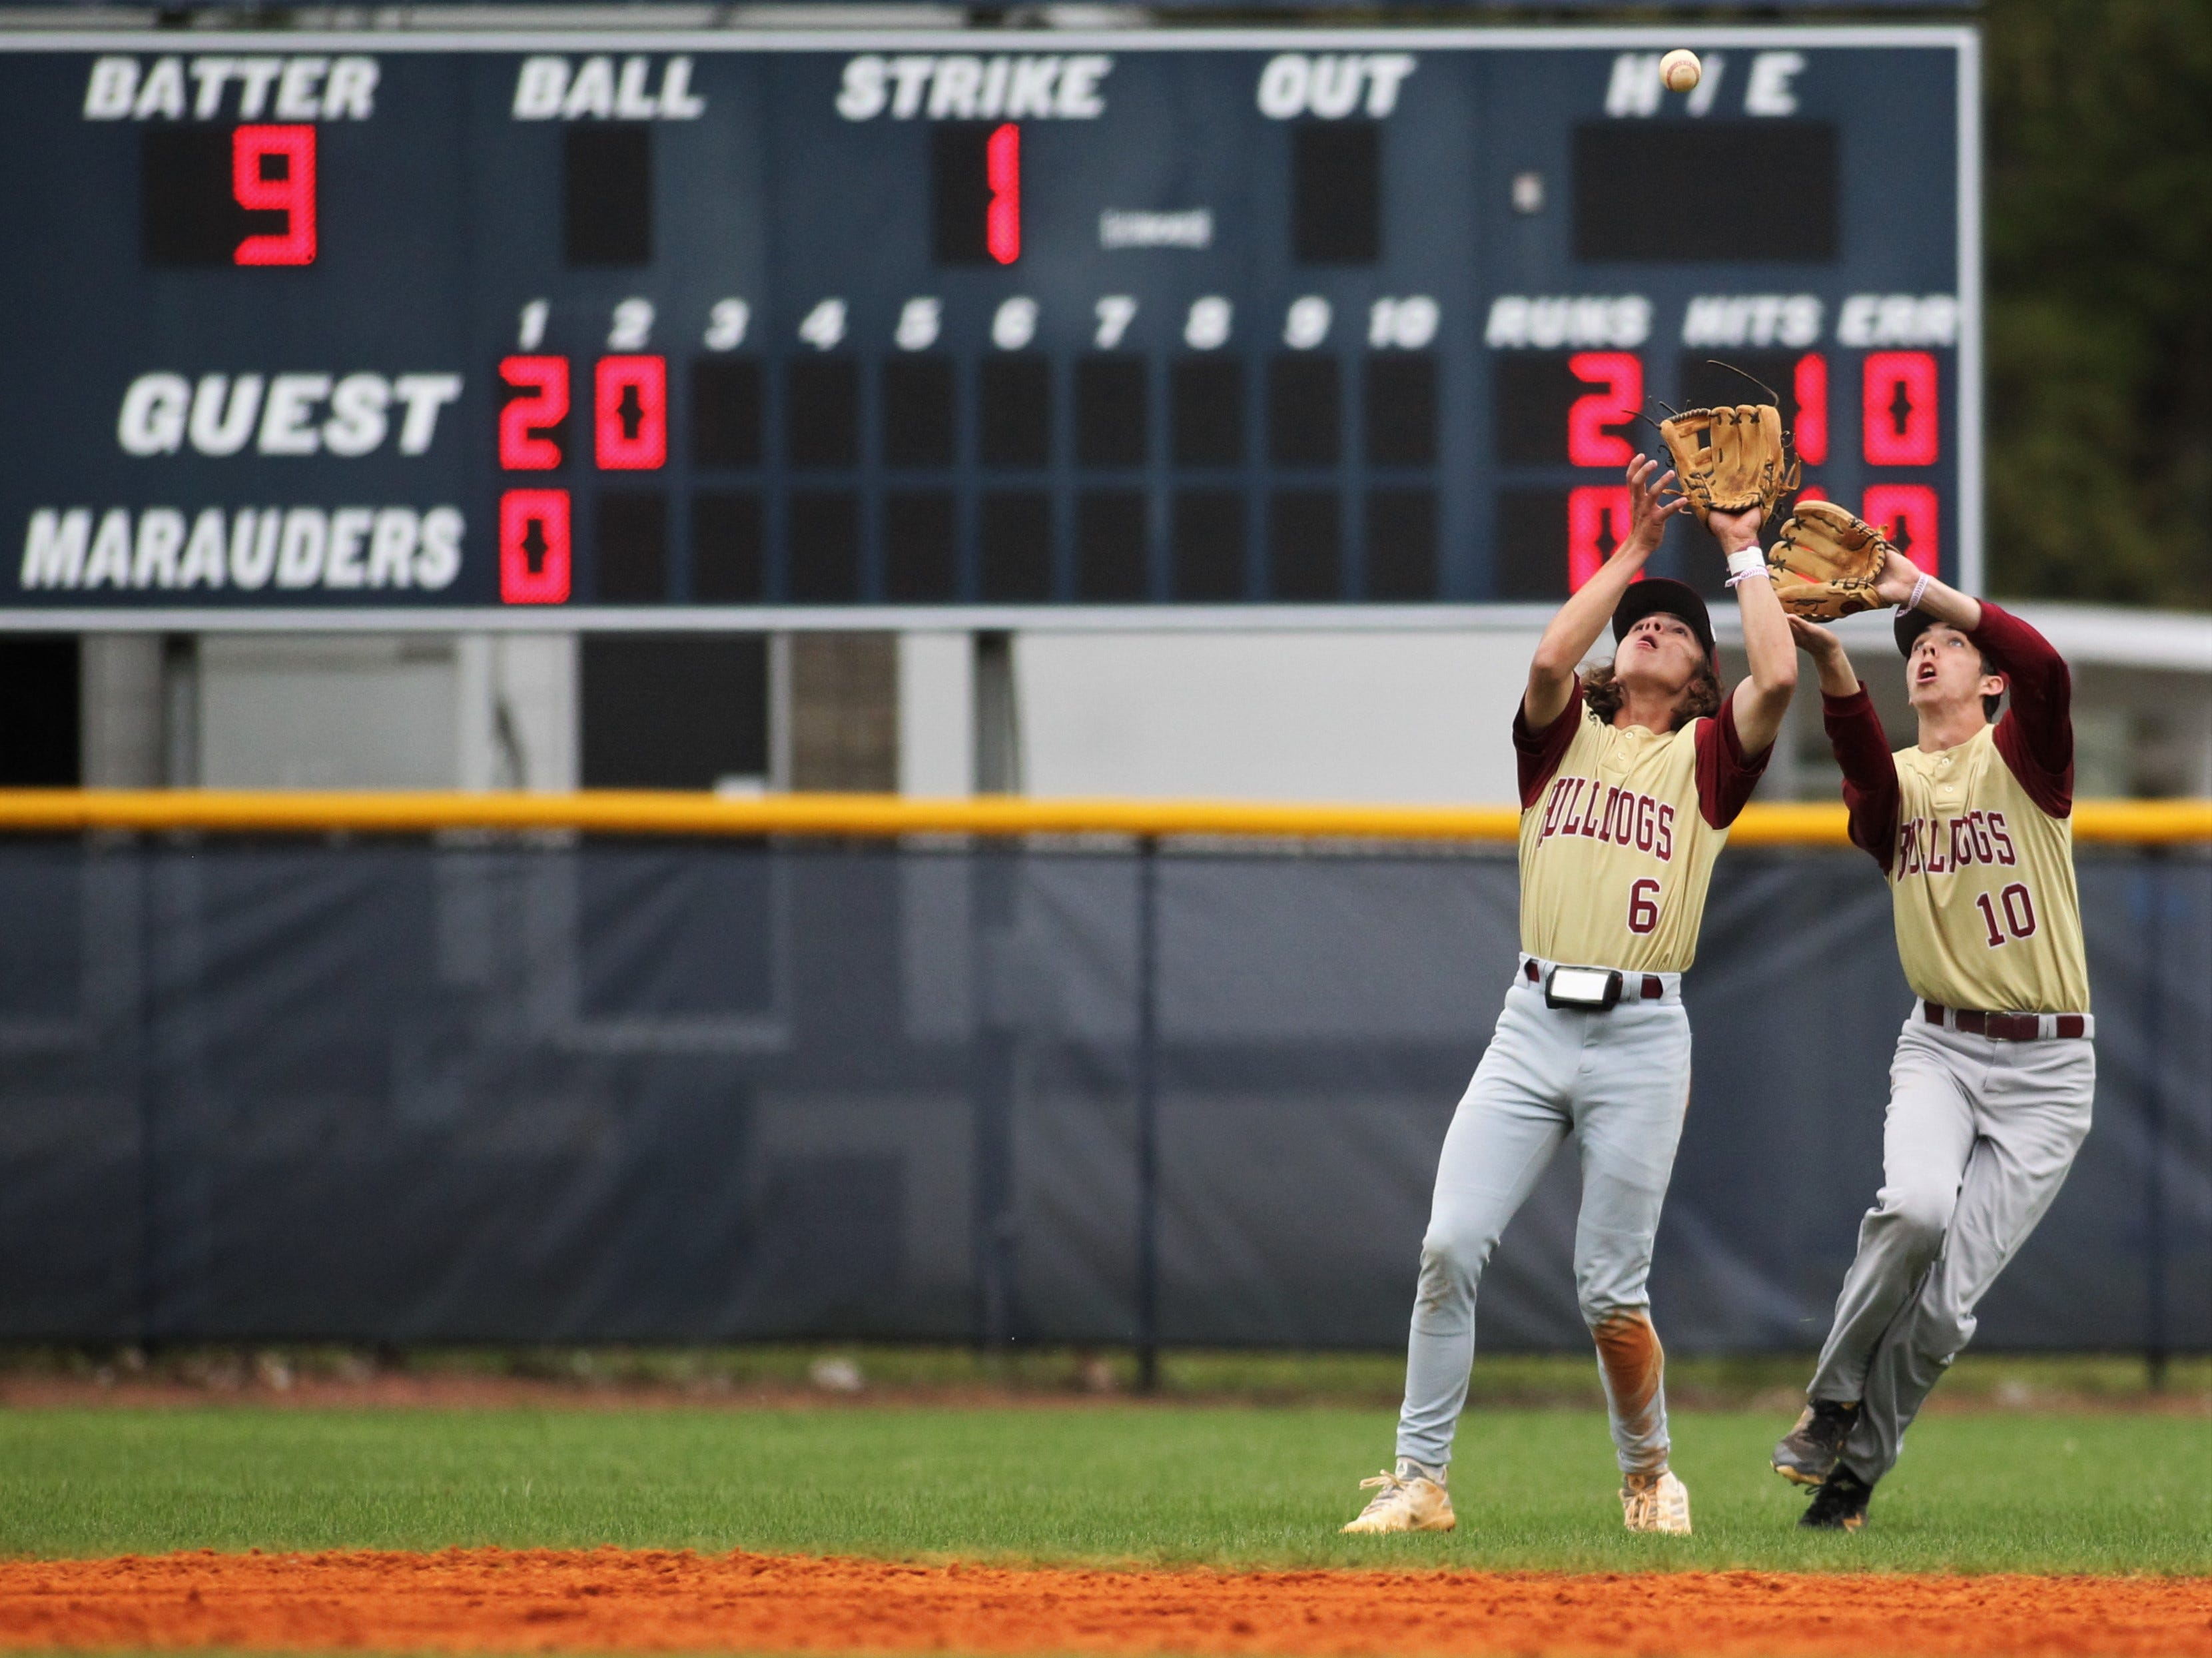 Liberty County shortstop Charlie Burns and center fielder Aiden Hirsch collide on a pop fly but Burns made the out as Liberty County's baseball team went on the road to beat Maclay 8-2 on Saturday, March 16, 2019. The Bulldogs played their first game following their head coach Corey Crum's tragic death six days ago.